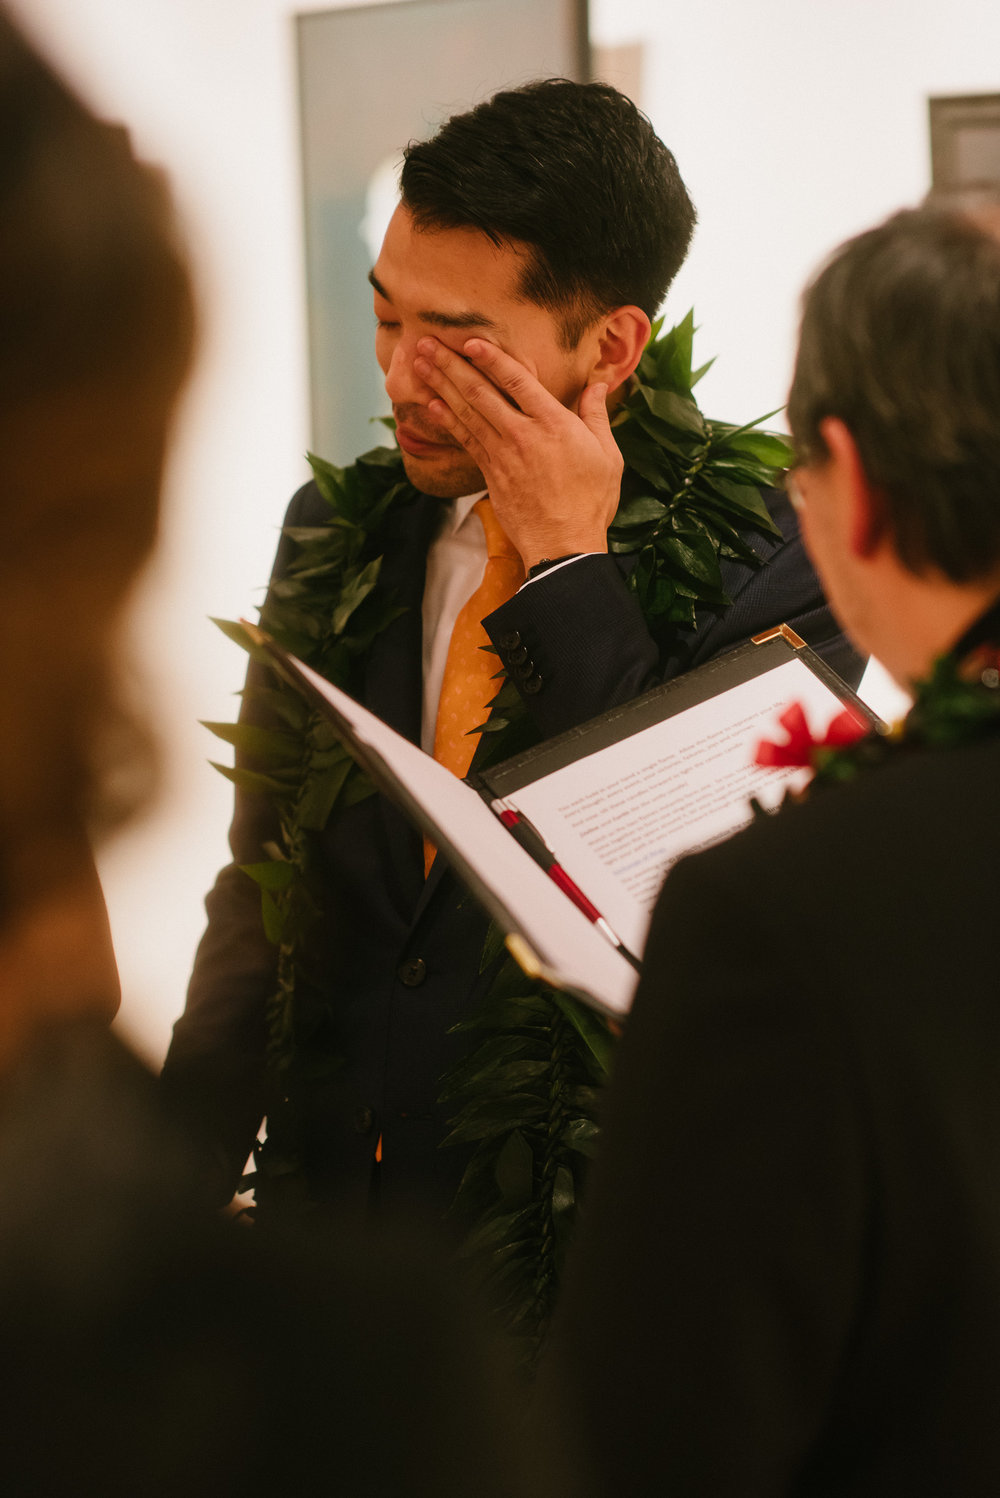 Groom Wiping Tears during Wedding Ceremony in Pioneer Square